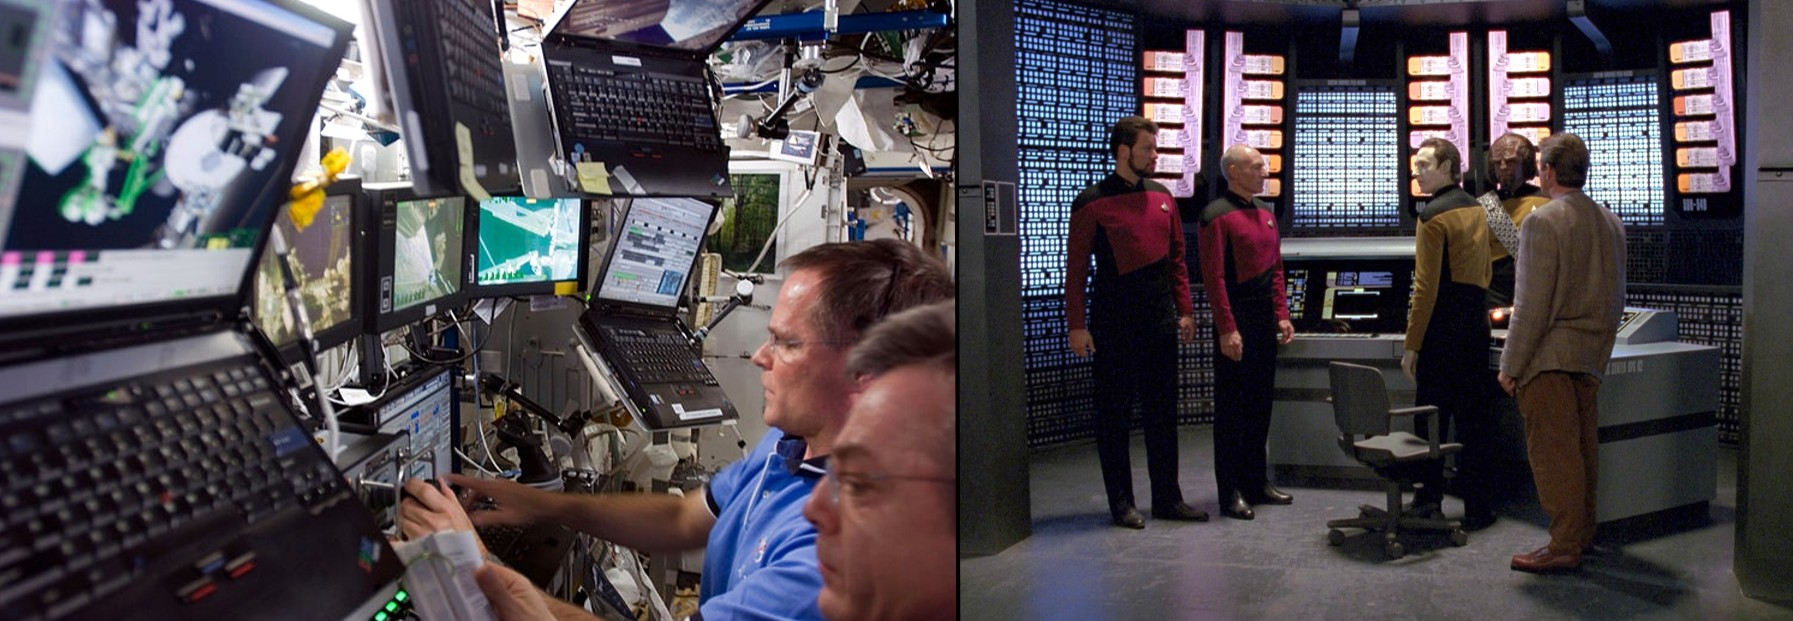 ST Computer Access Room vs ISS Onboard Computer_2